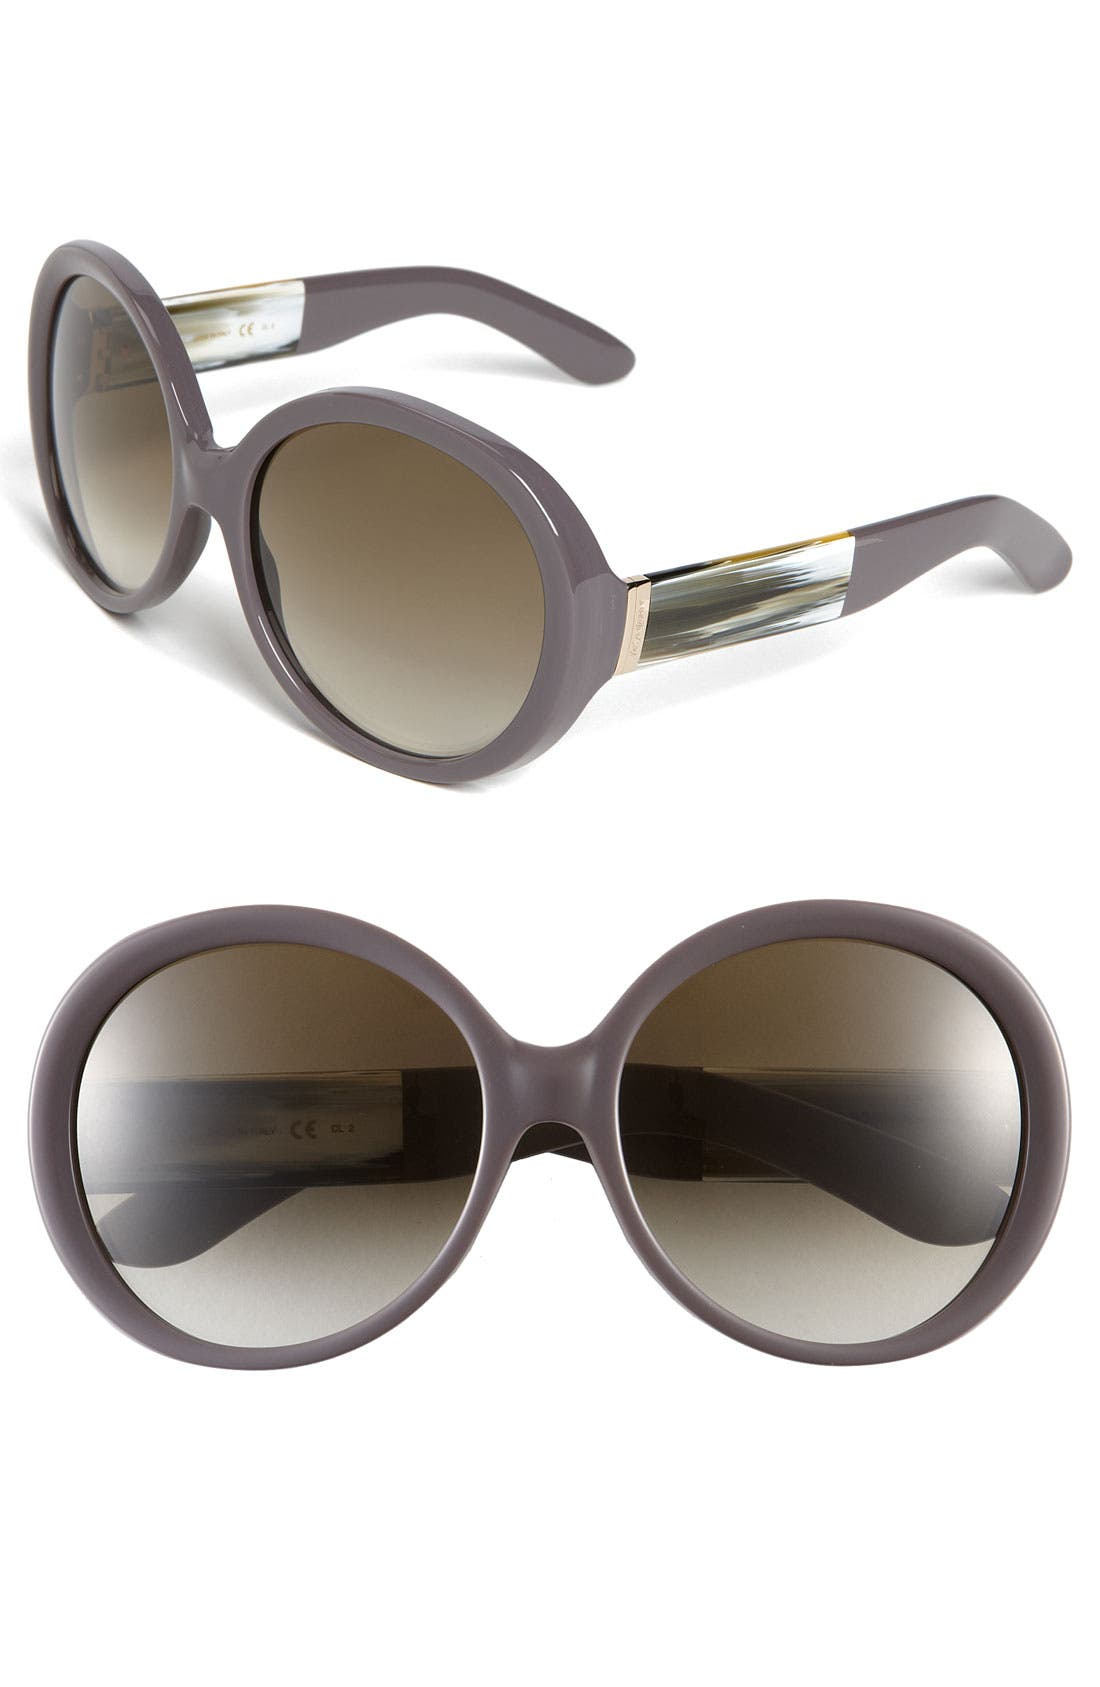 Main Image - Yves Saint Laurent Oversized Round Sunglasses